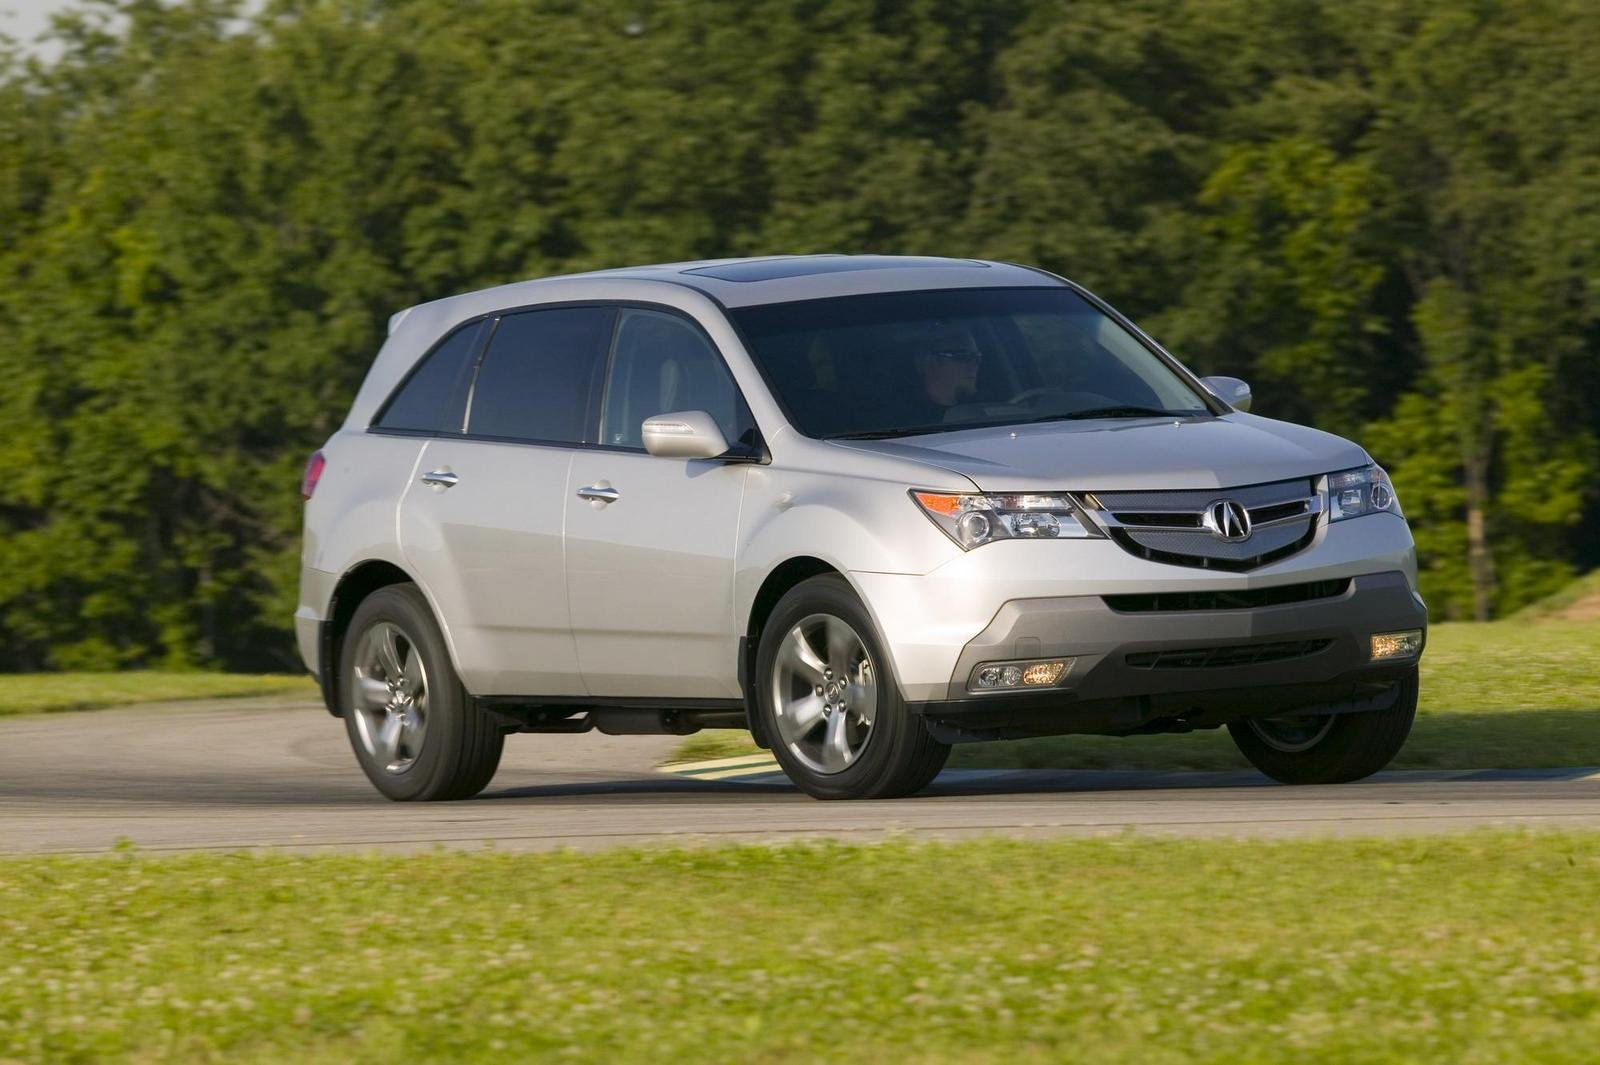 2009 acura mdx picture 299815 car review top speed. Black Bedroom Furniture Sets. Home Design Ideas